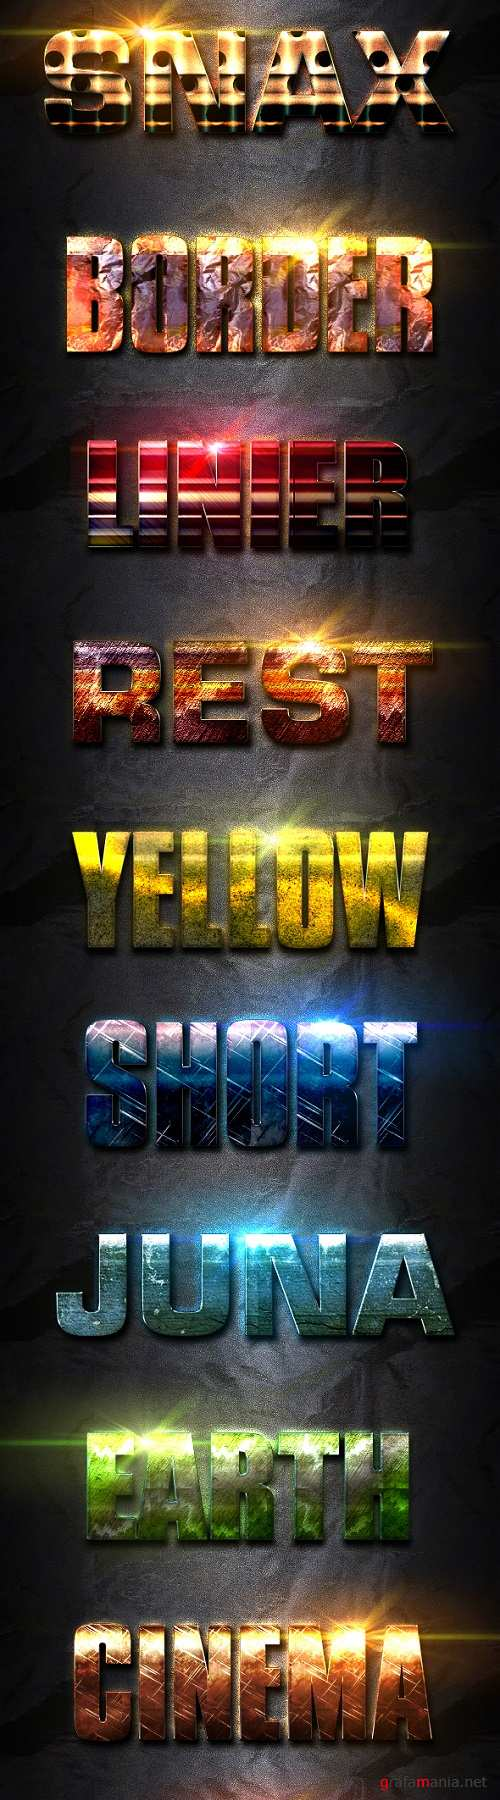 12 Light Photoshop Text Effect Vol 2 - 19828290